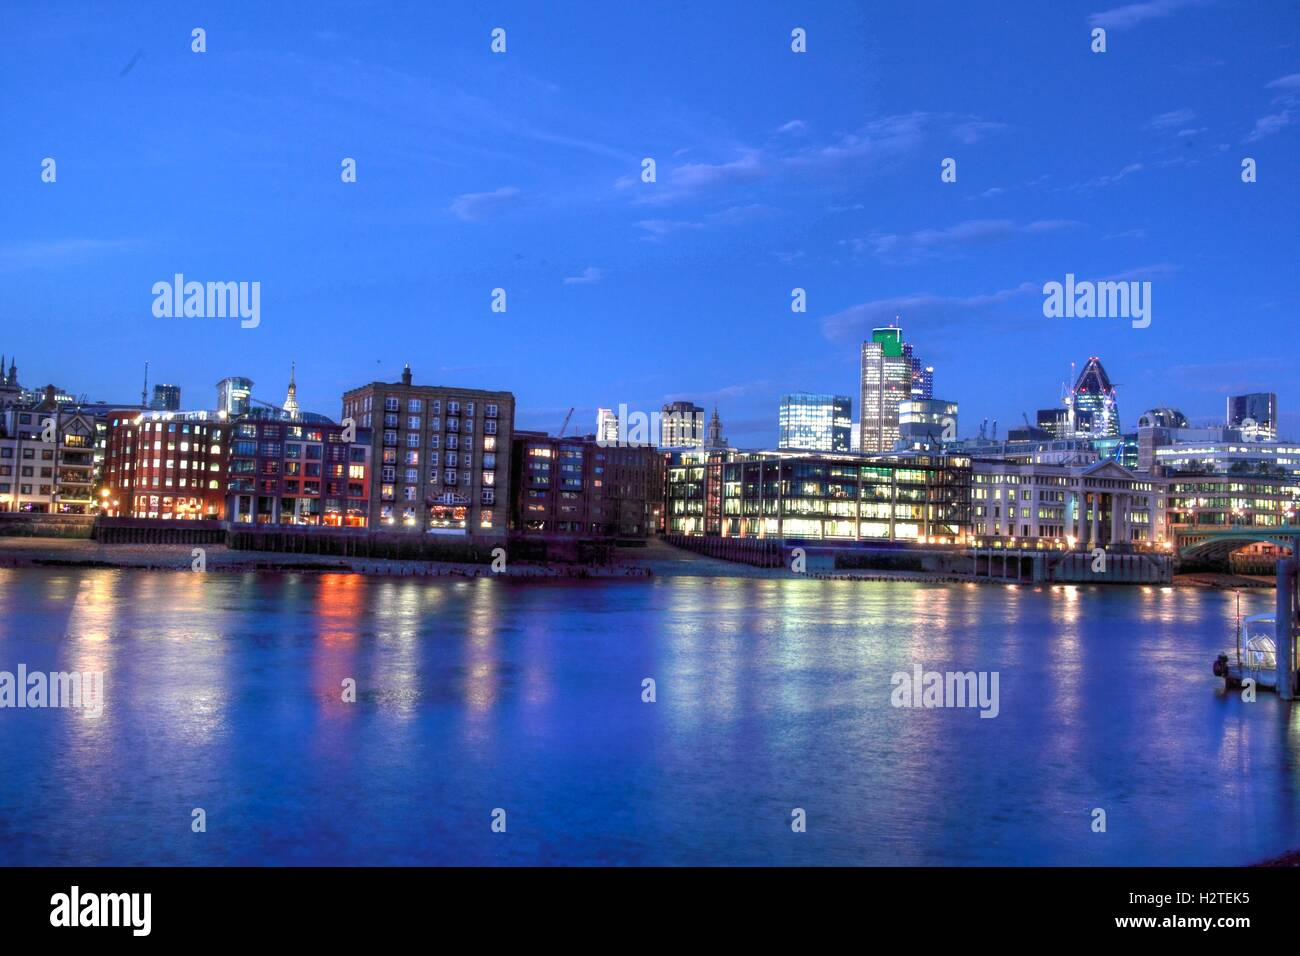 Capital,City,water,reflection,reflections,skyline,pano,blue,dusk,evening,morning,dawn,bridge,bridges,dock,dockside,riverside,side,wide,landscape,south,north,bank,travel,traveller,tourist,thamespanorama,architecture,boats,building,business,business,district,cityscape,lit,River Side,GoTonySmith,@HotpixUK,Tony,Smith,different,unique,Panorama,bridges,crossing,crossings,lights,icon,iconic,sky,line,skyline,walkway,visitor,Buy Pictures of,Buy Images Of,Images of,Stock Images,Tony Smith,Photo of,River Thames,City Of London,River Thames Panorama,London City